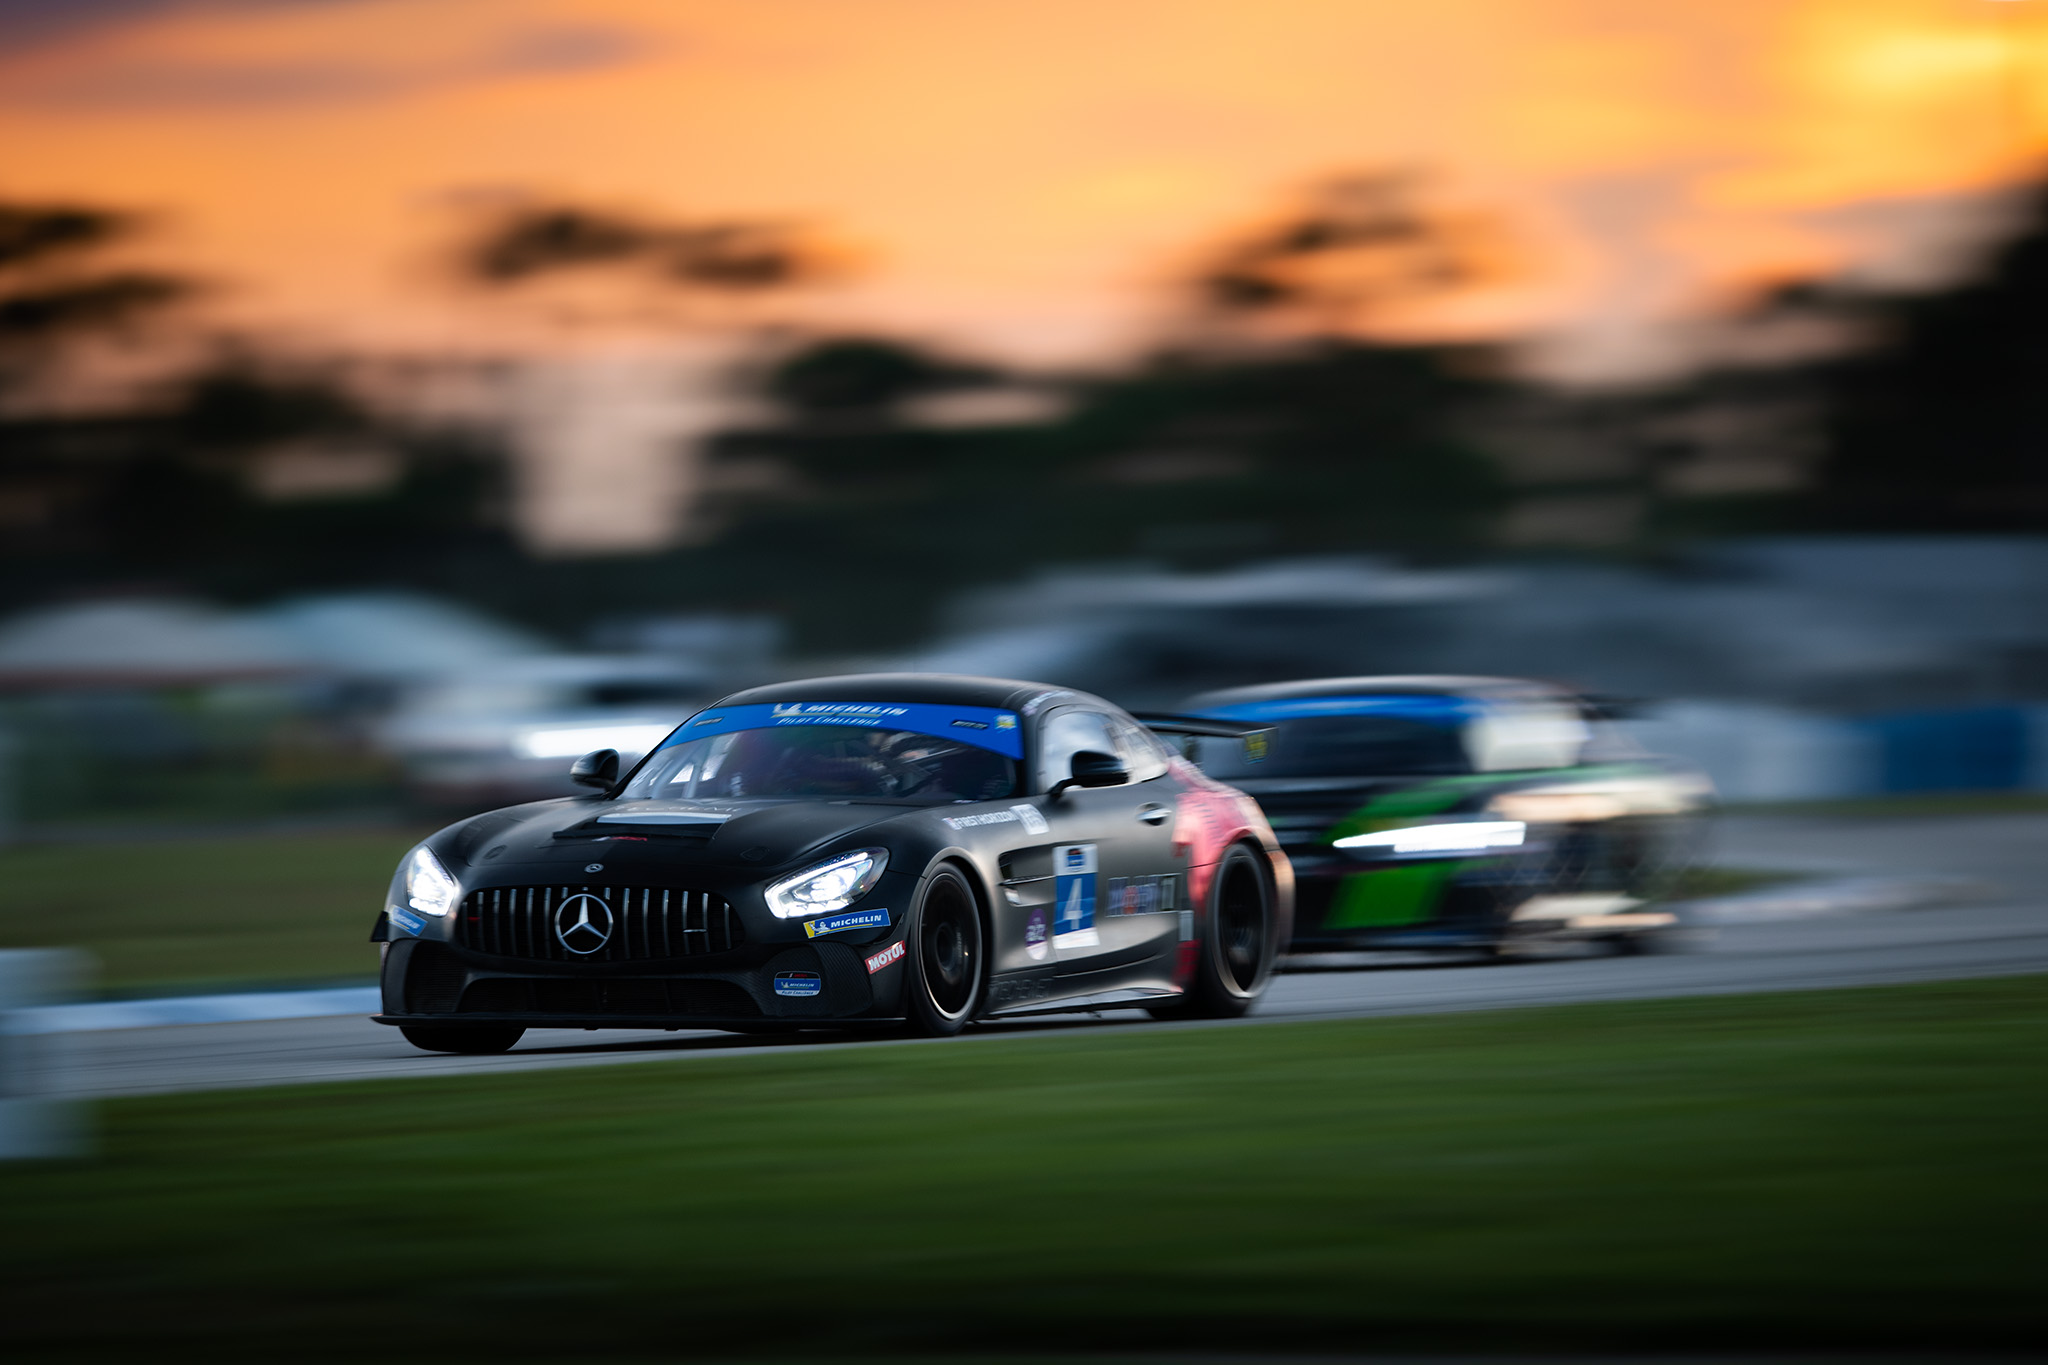 Russell Ward, charging into the dusk in Winward Racing's no 4 Mercedes-AMG GT GT4 at Sebring, photography by Luke Munnell